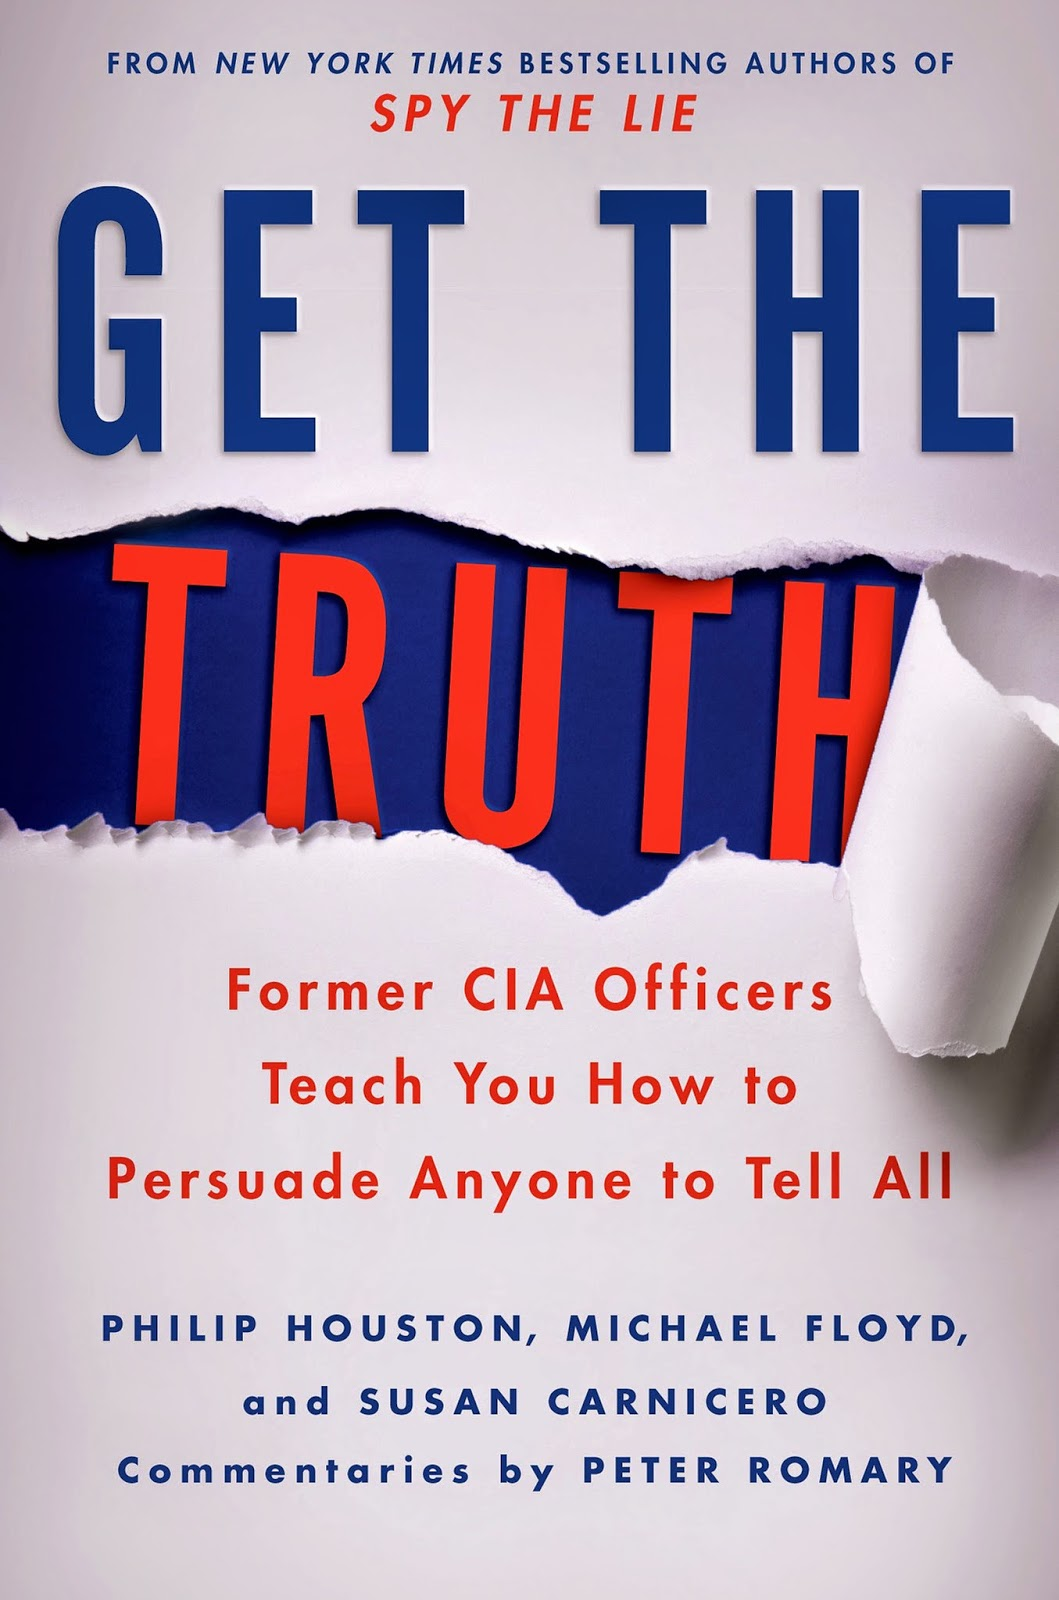 How Leaders Can Get People to Tell the Truth